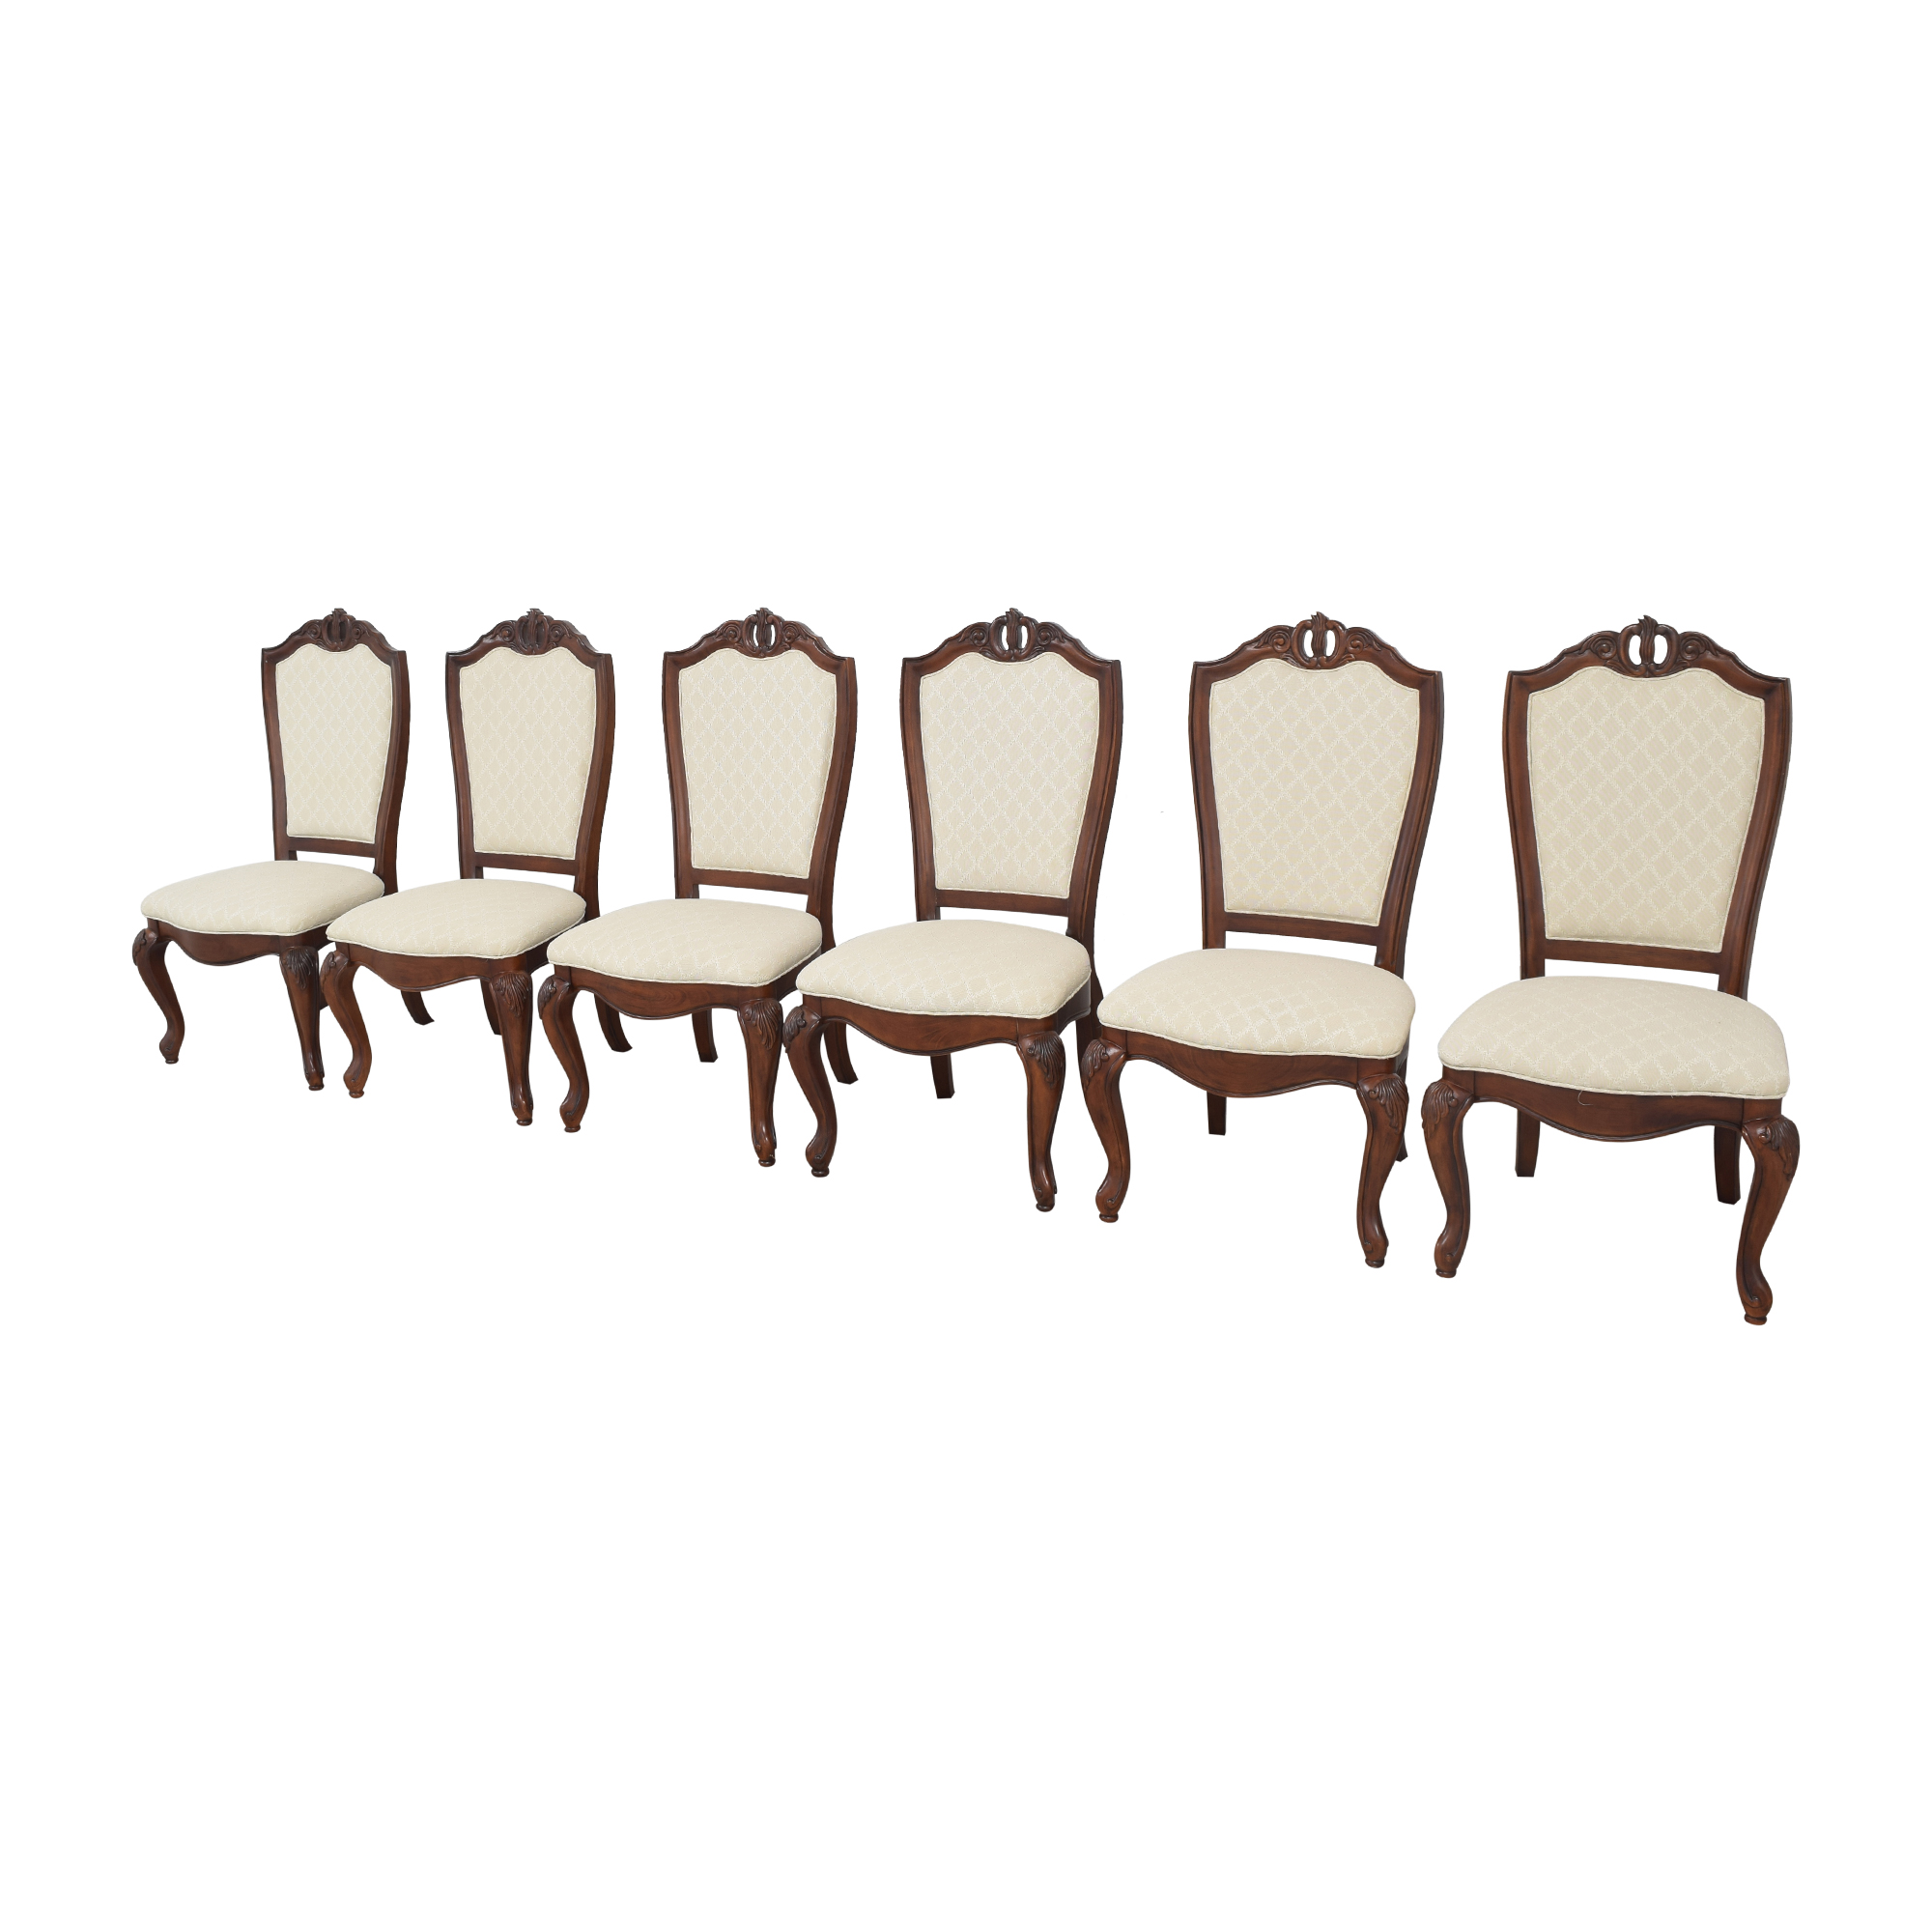 American Drew American Drew Upholstered Dining Chairs for sale